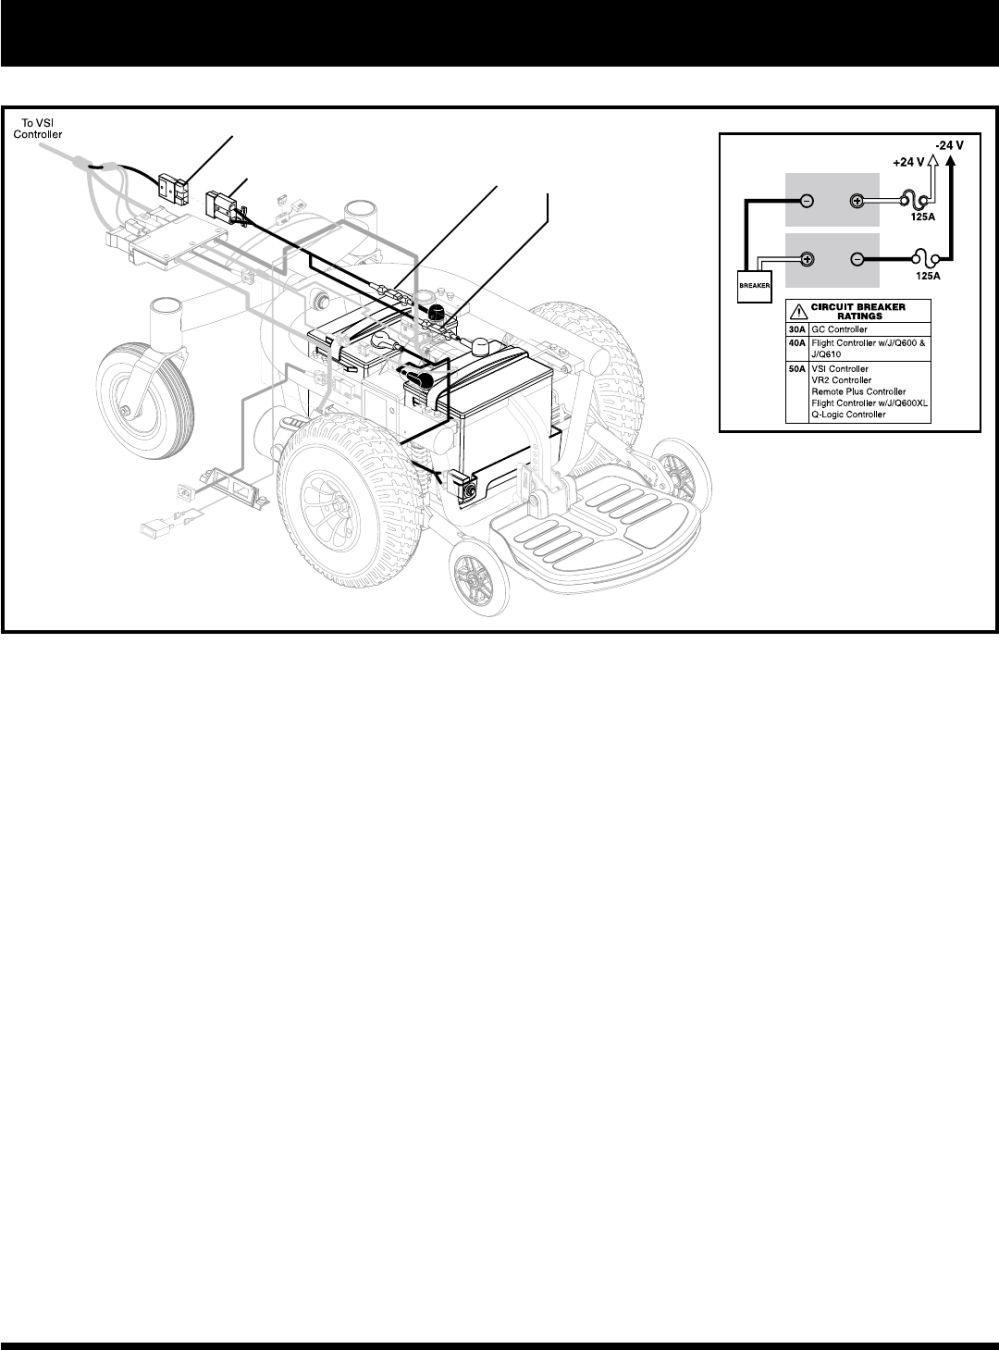 medium resolution of jazzy 1103 wiring diagram wiring diagram blogpage 44 of pride mobility mobility aid 1103 ultra user